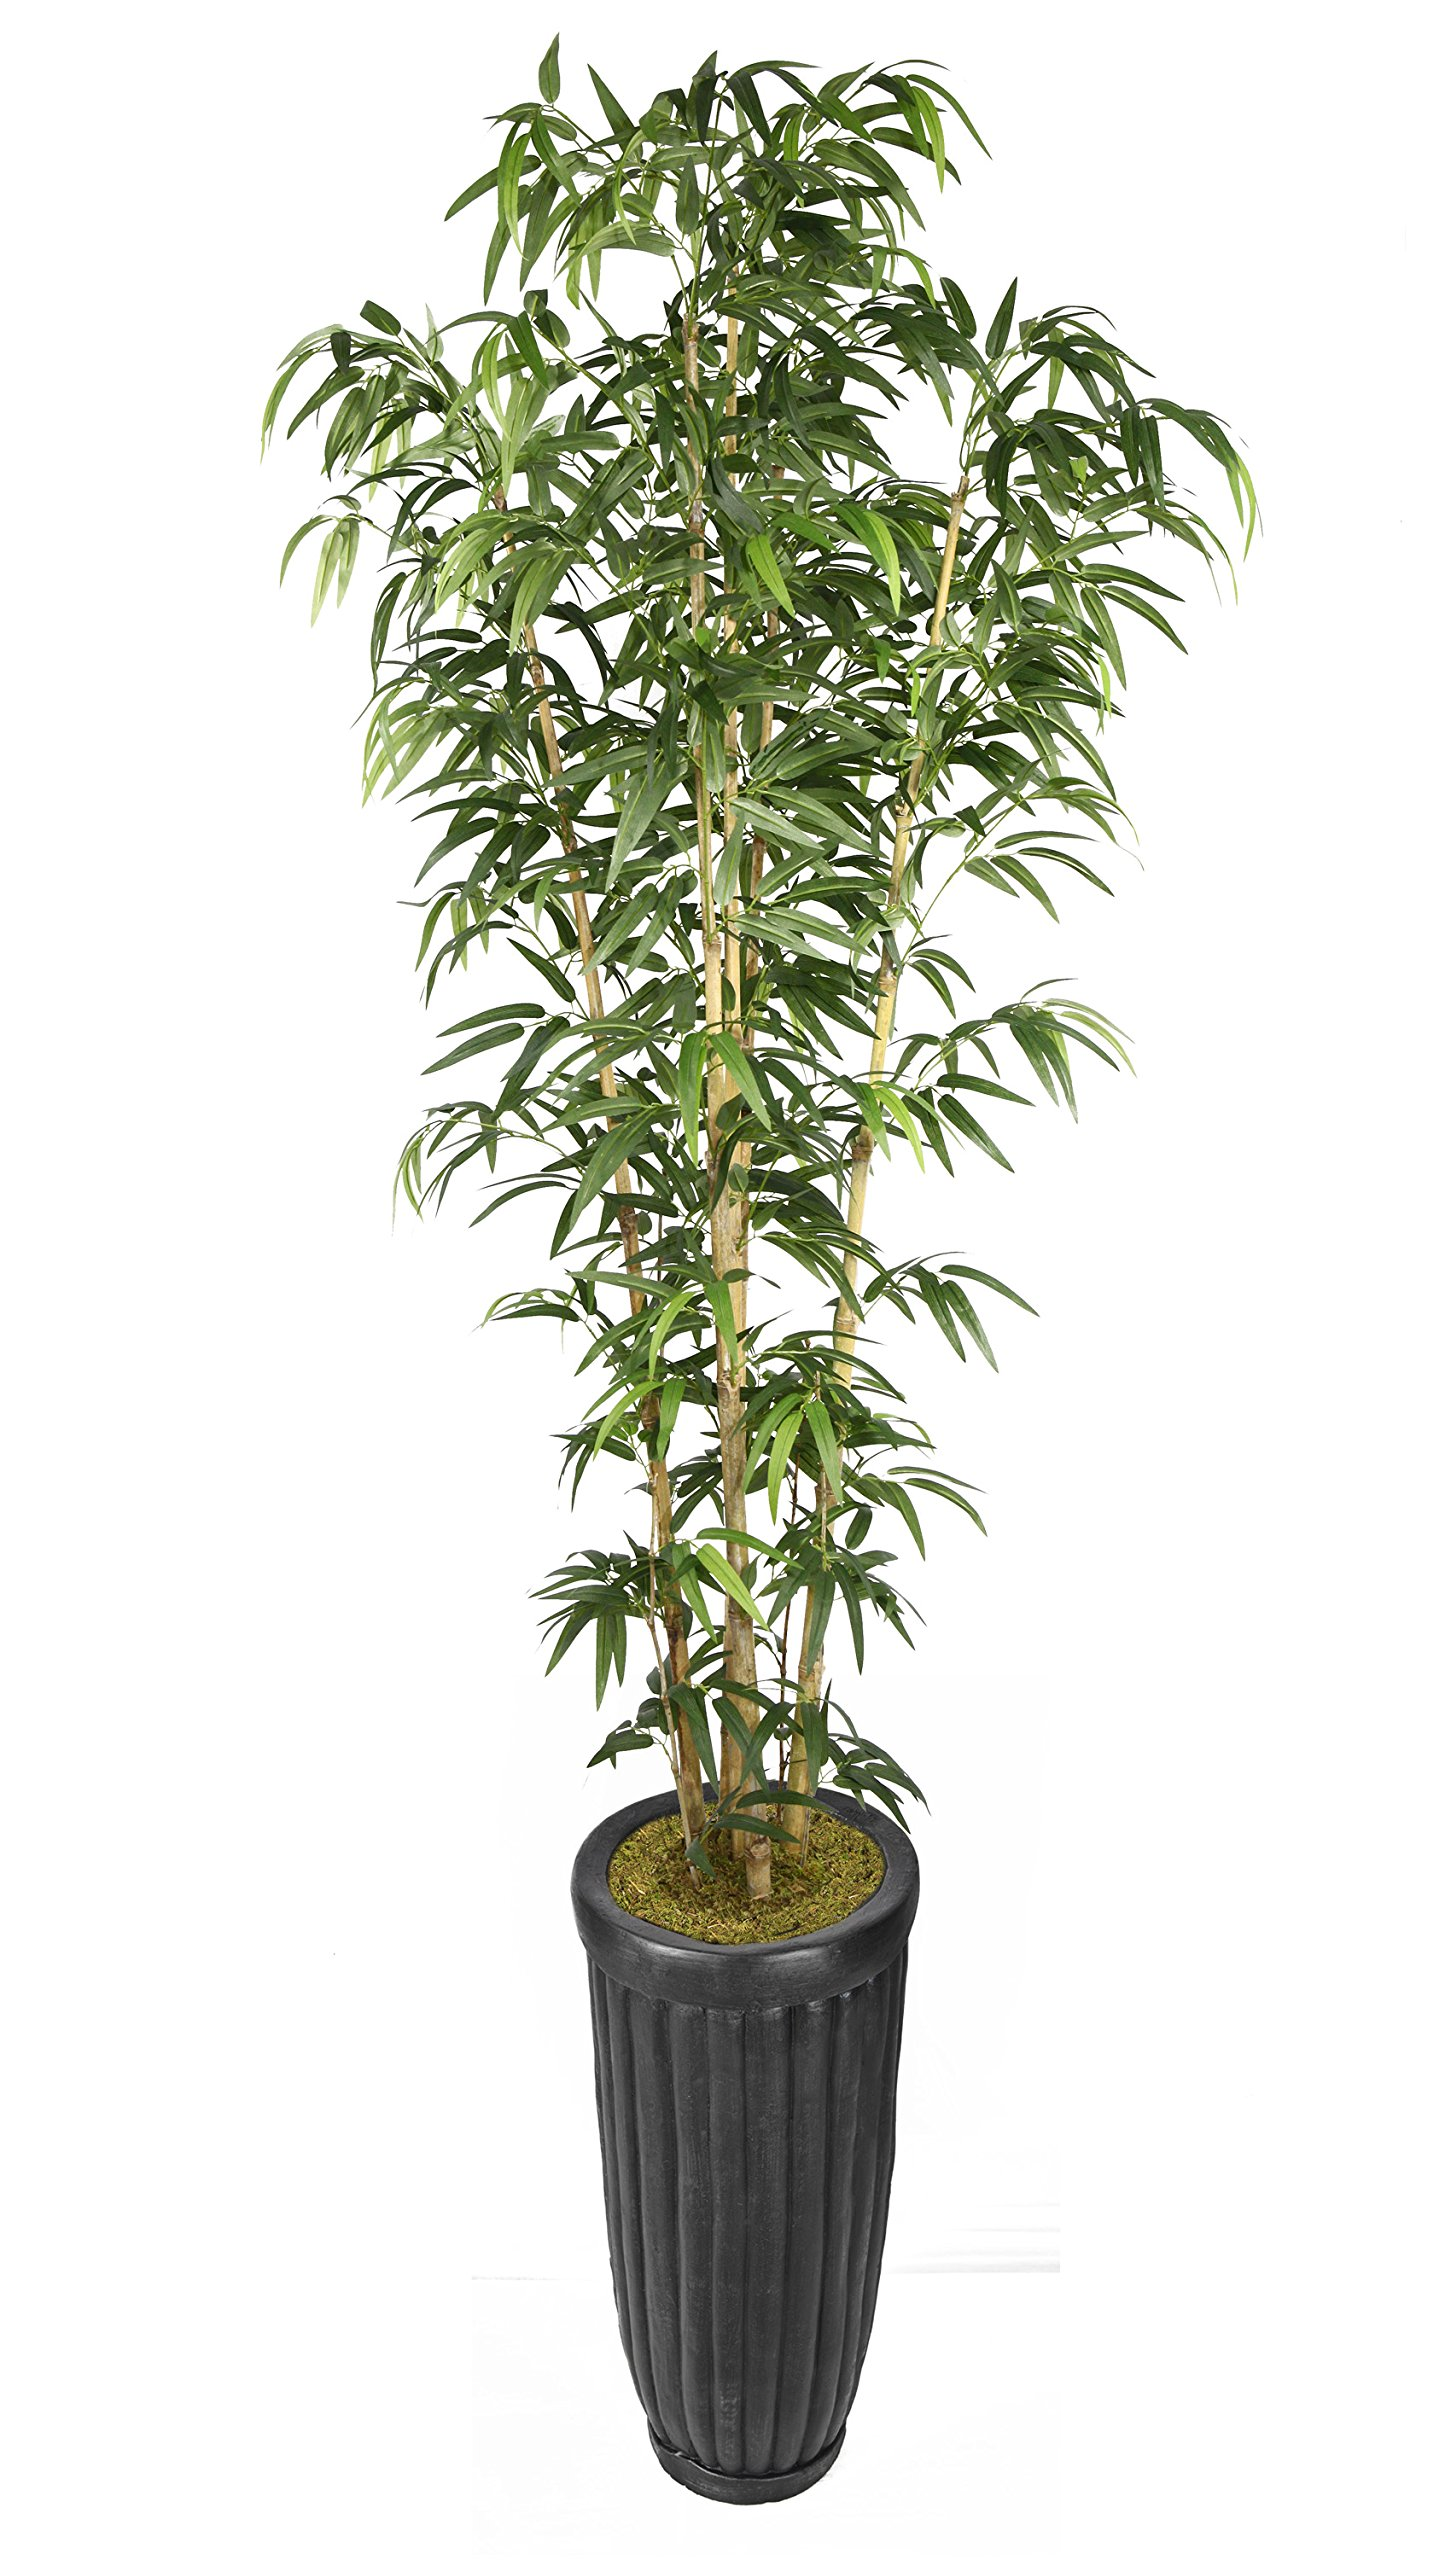 Laura Ashley VHX116218 93'' Bamboo Tree in Natural Poles in Planter Tree by Laura Ashley (Image #1)